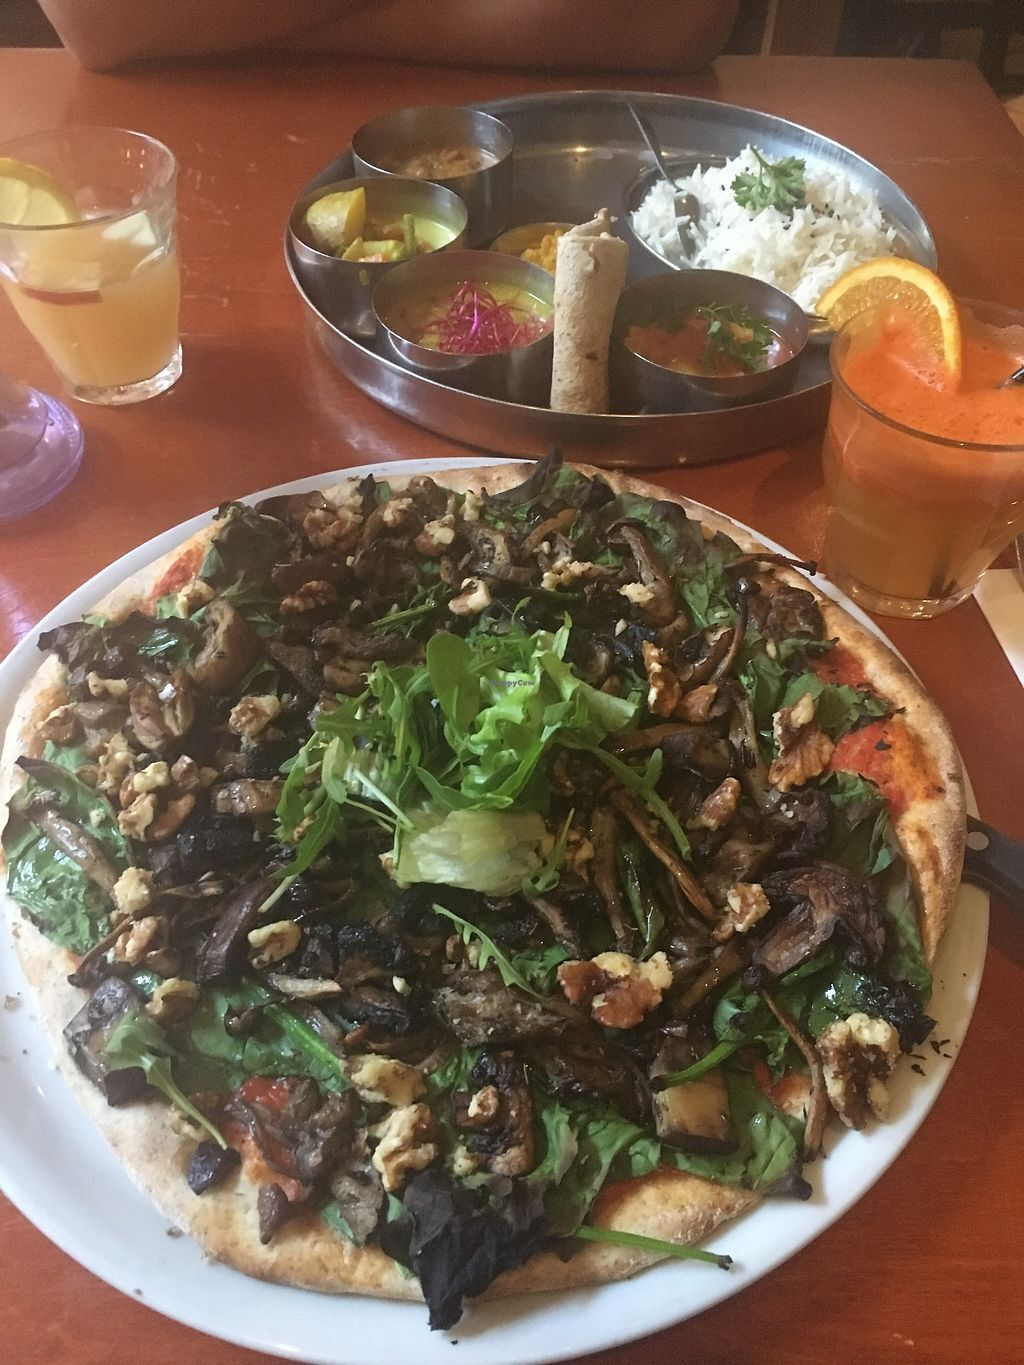 "Photo of Golden Temple  by <a href=""/members/profile/Alexandra_Sunshine"">Alexandra_Sunshine</a> <br/>Vegan Pizza <br/> August 24, 2017  - <a href='/contact/abuse/image/1007/296683'>Report</a>"